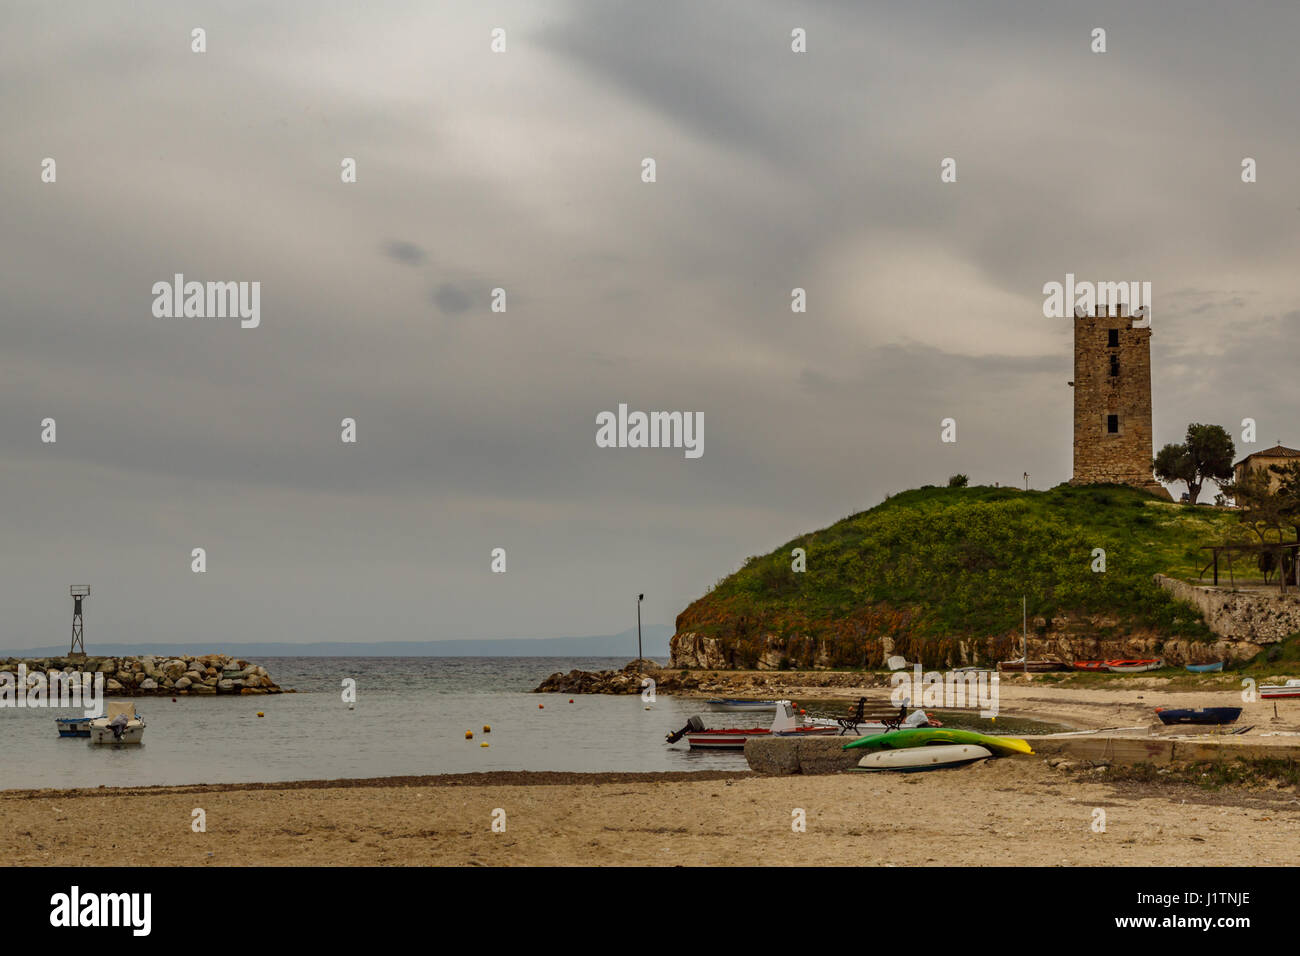 Byzantine tower on a hill by the sea and against a cloudy sky and beach with boats, Nea Fokaia, Greece - Stock Image